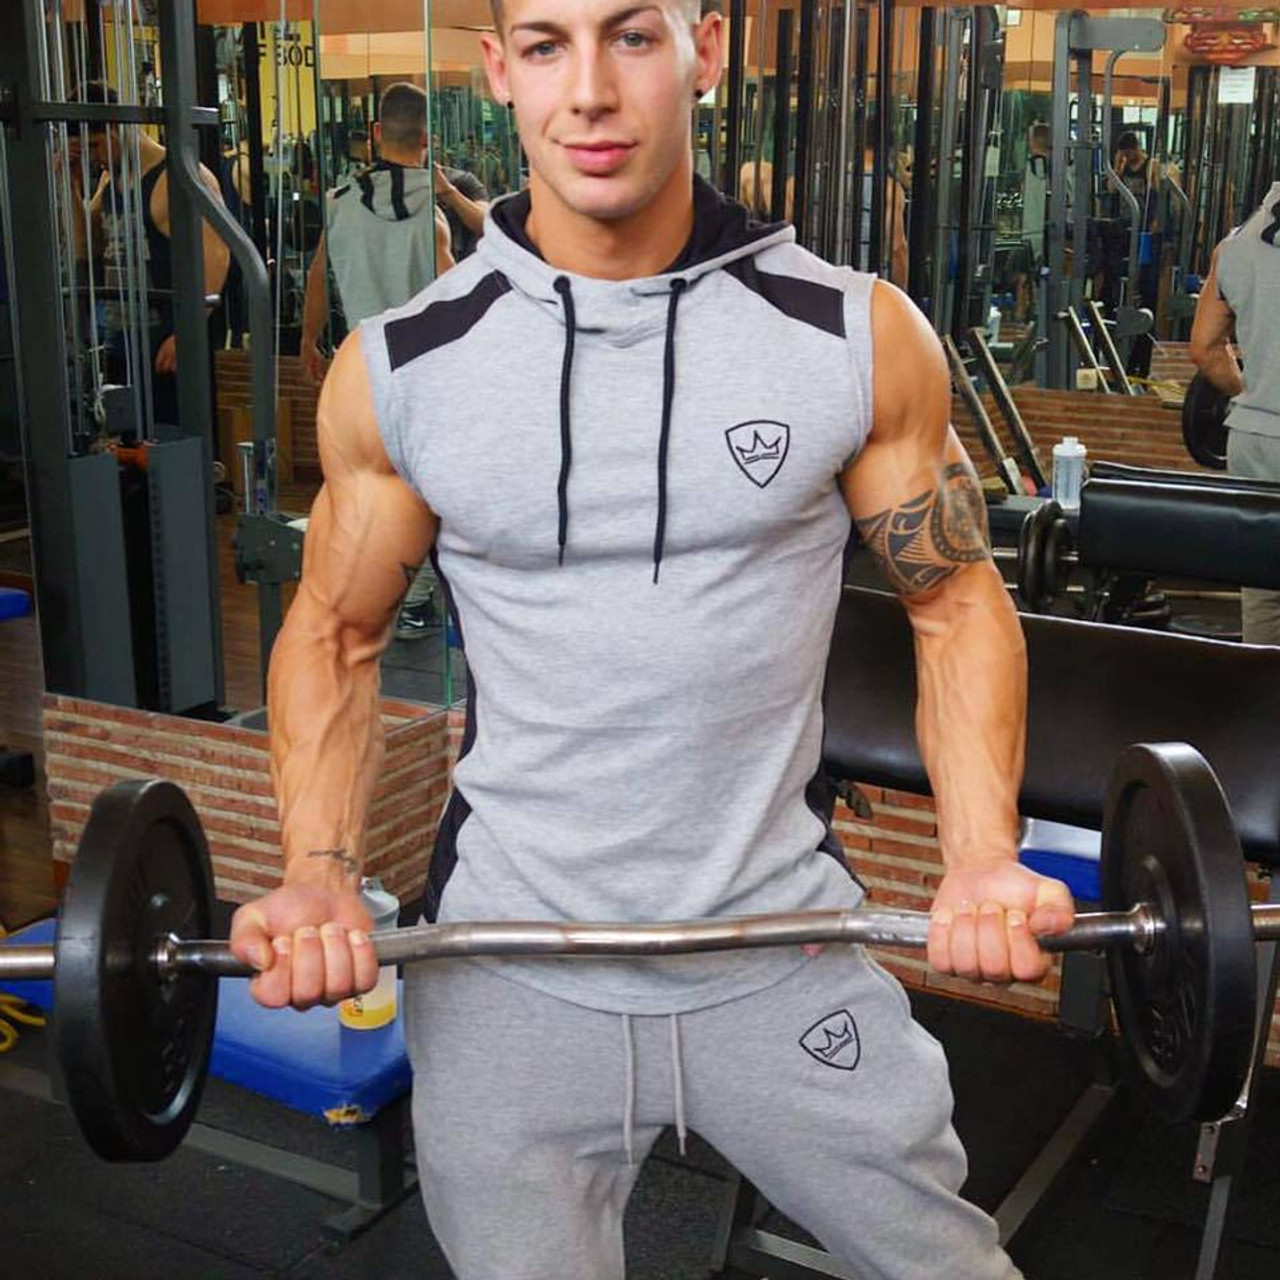 69c7d5fe83304 ... SJ 2017 Fitness Men Bodybuilding Sleeveless Muscle Hoodies Workout  Clothes Casual Cotton Tops Hooded Tank Tops ...